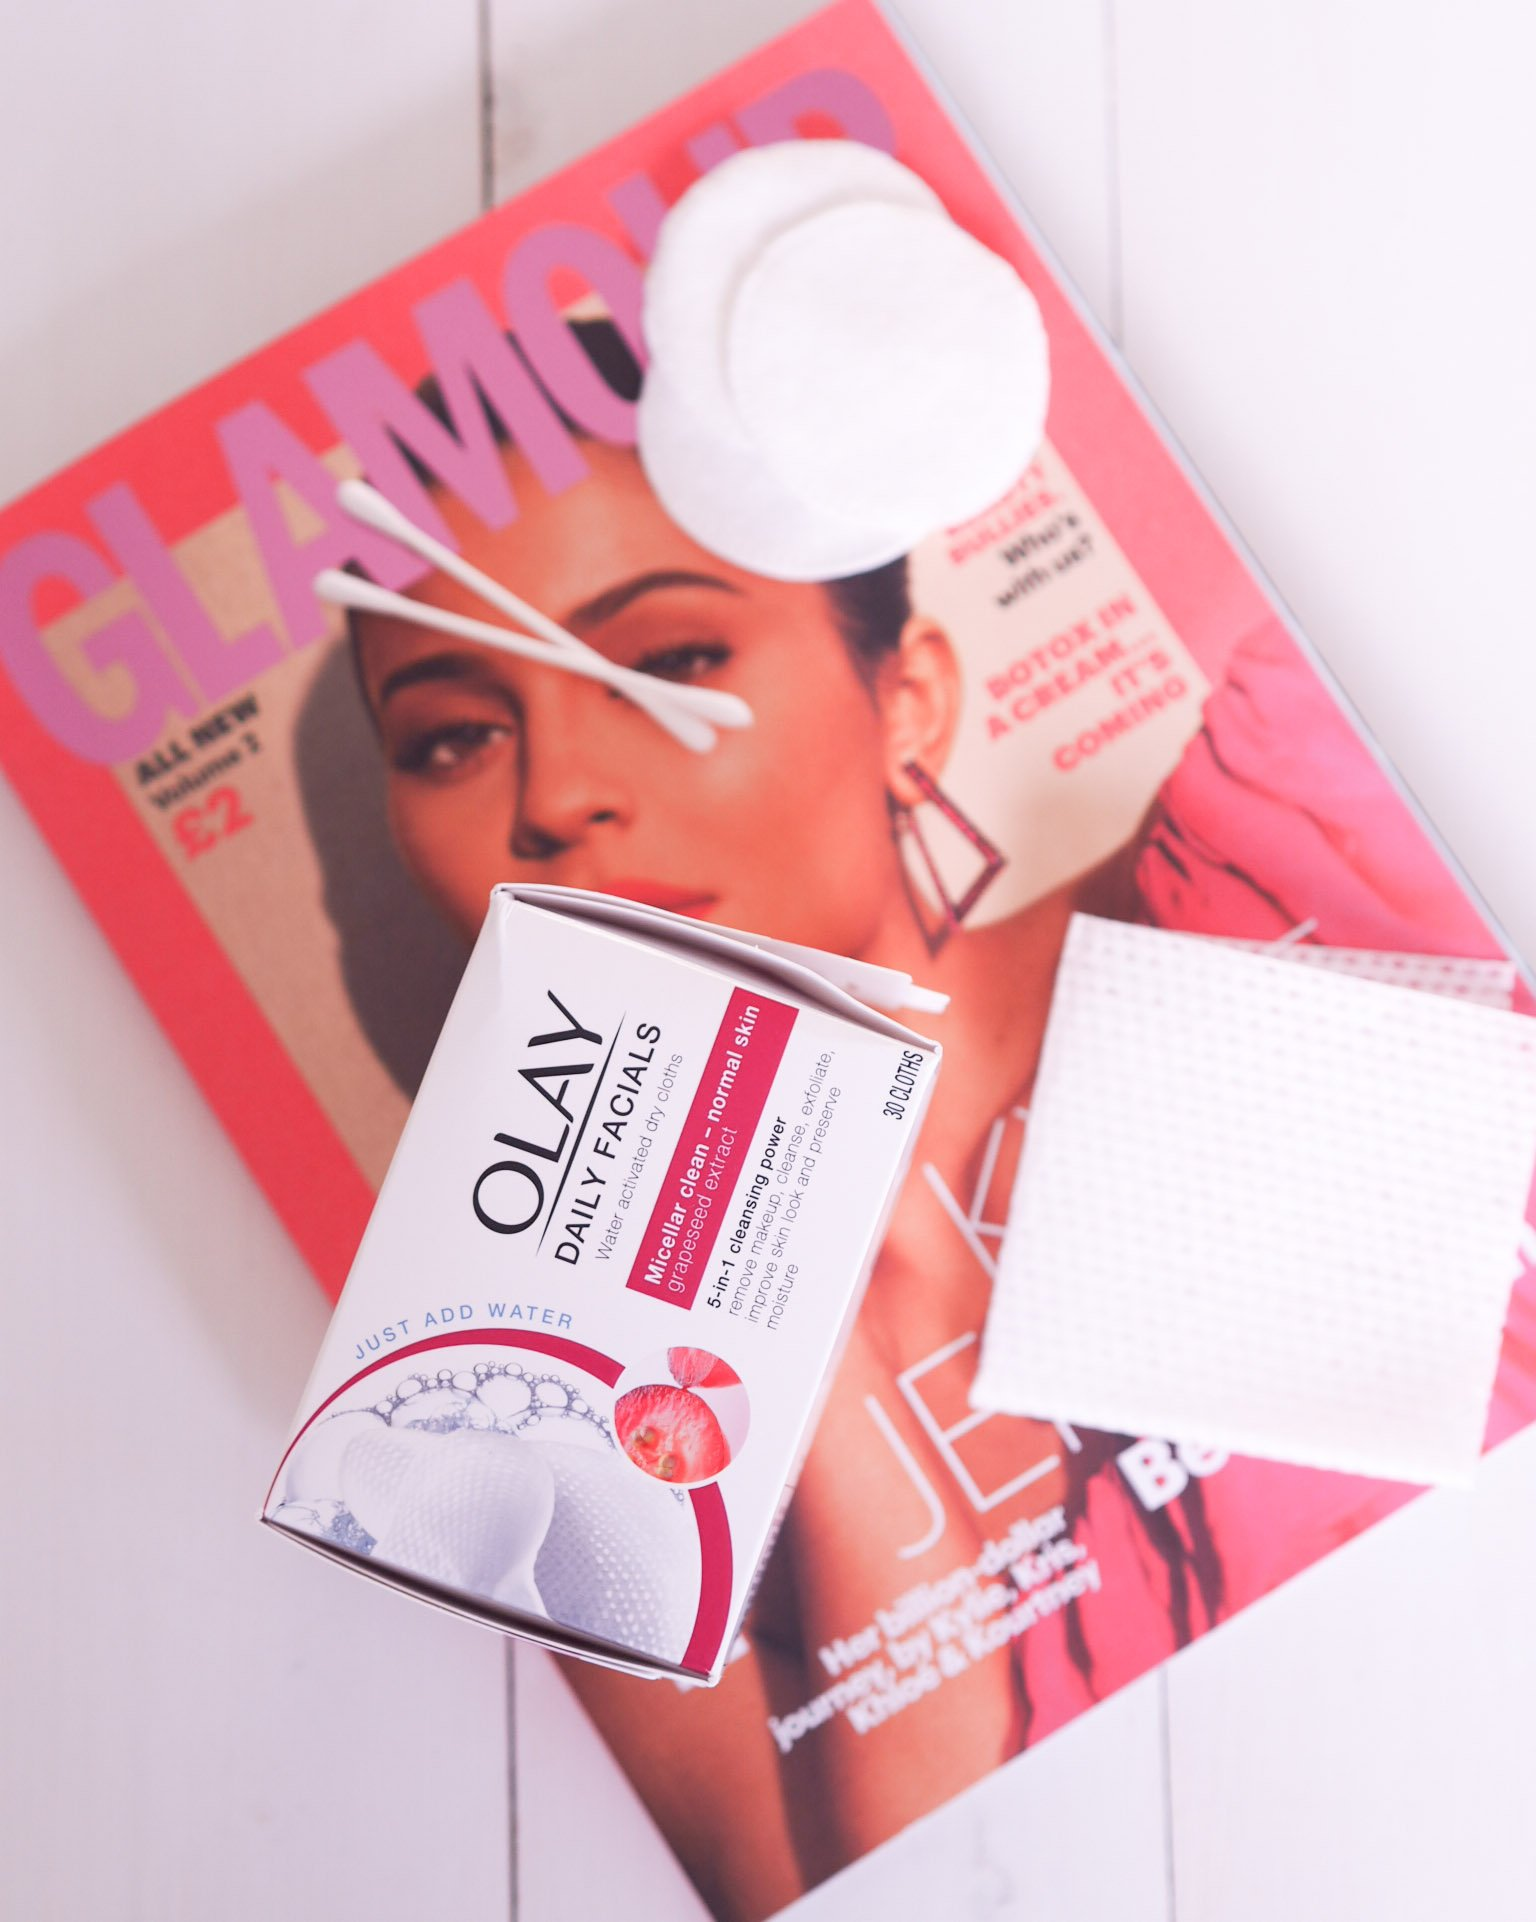 Olay Daily Facials 5-in1 Dry Cloths Review